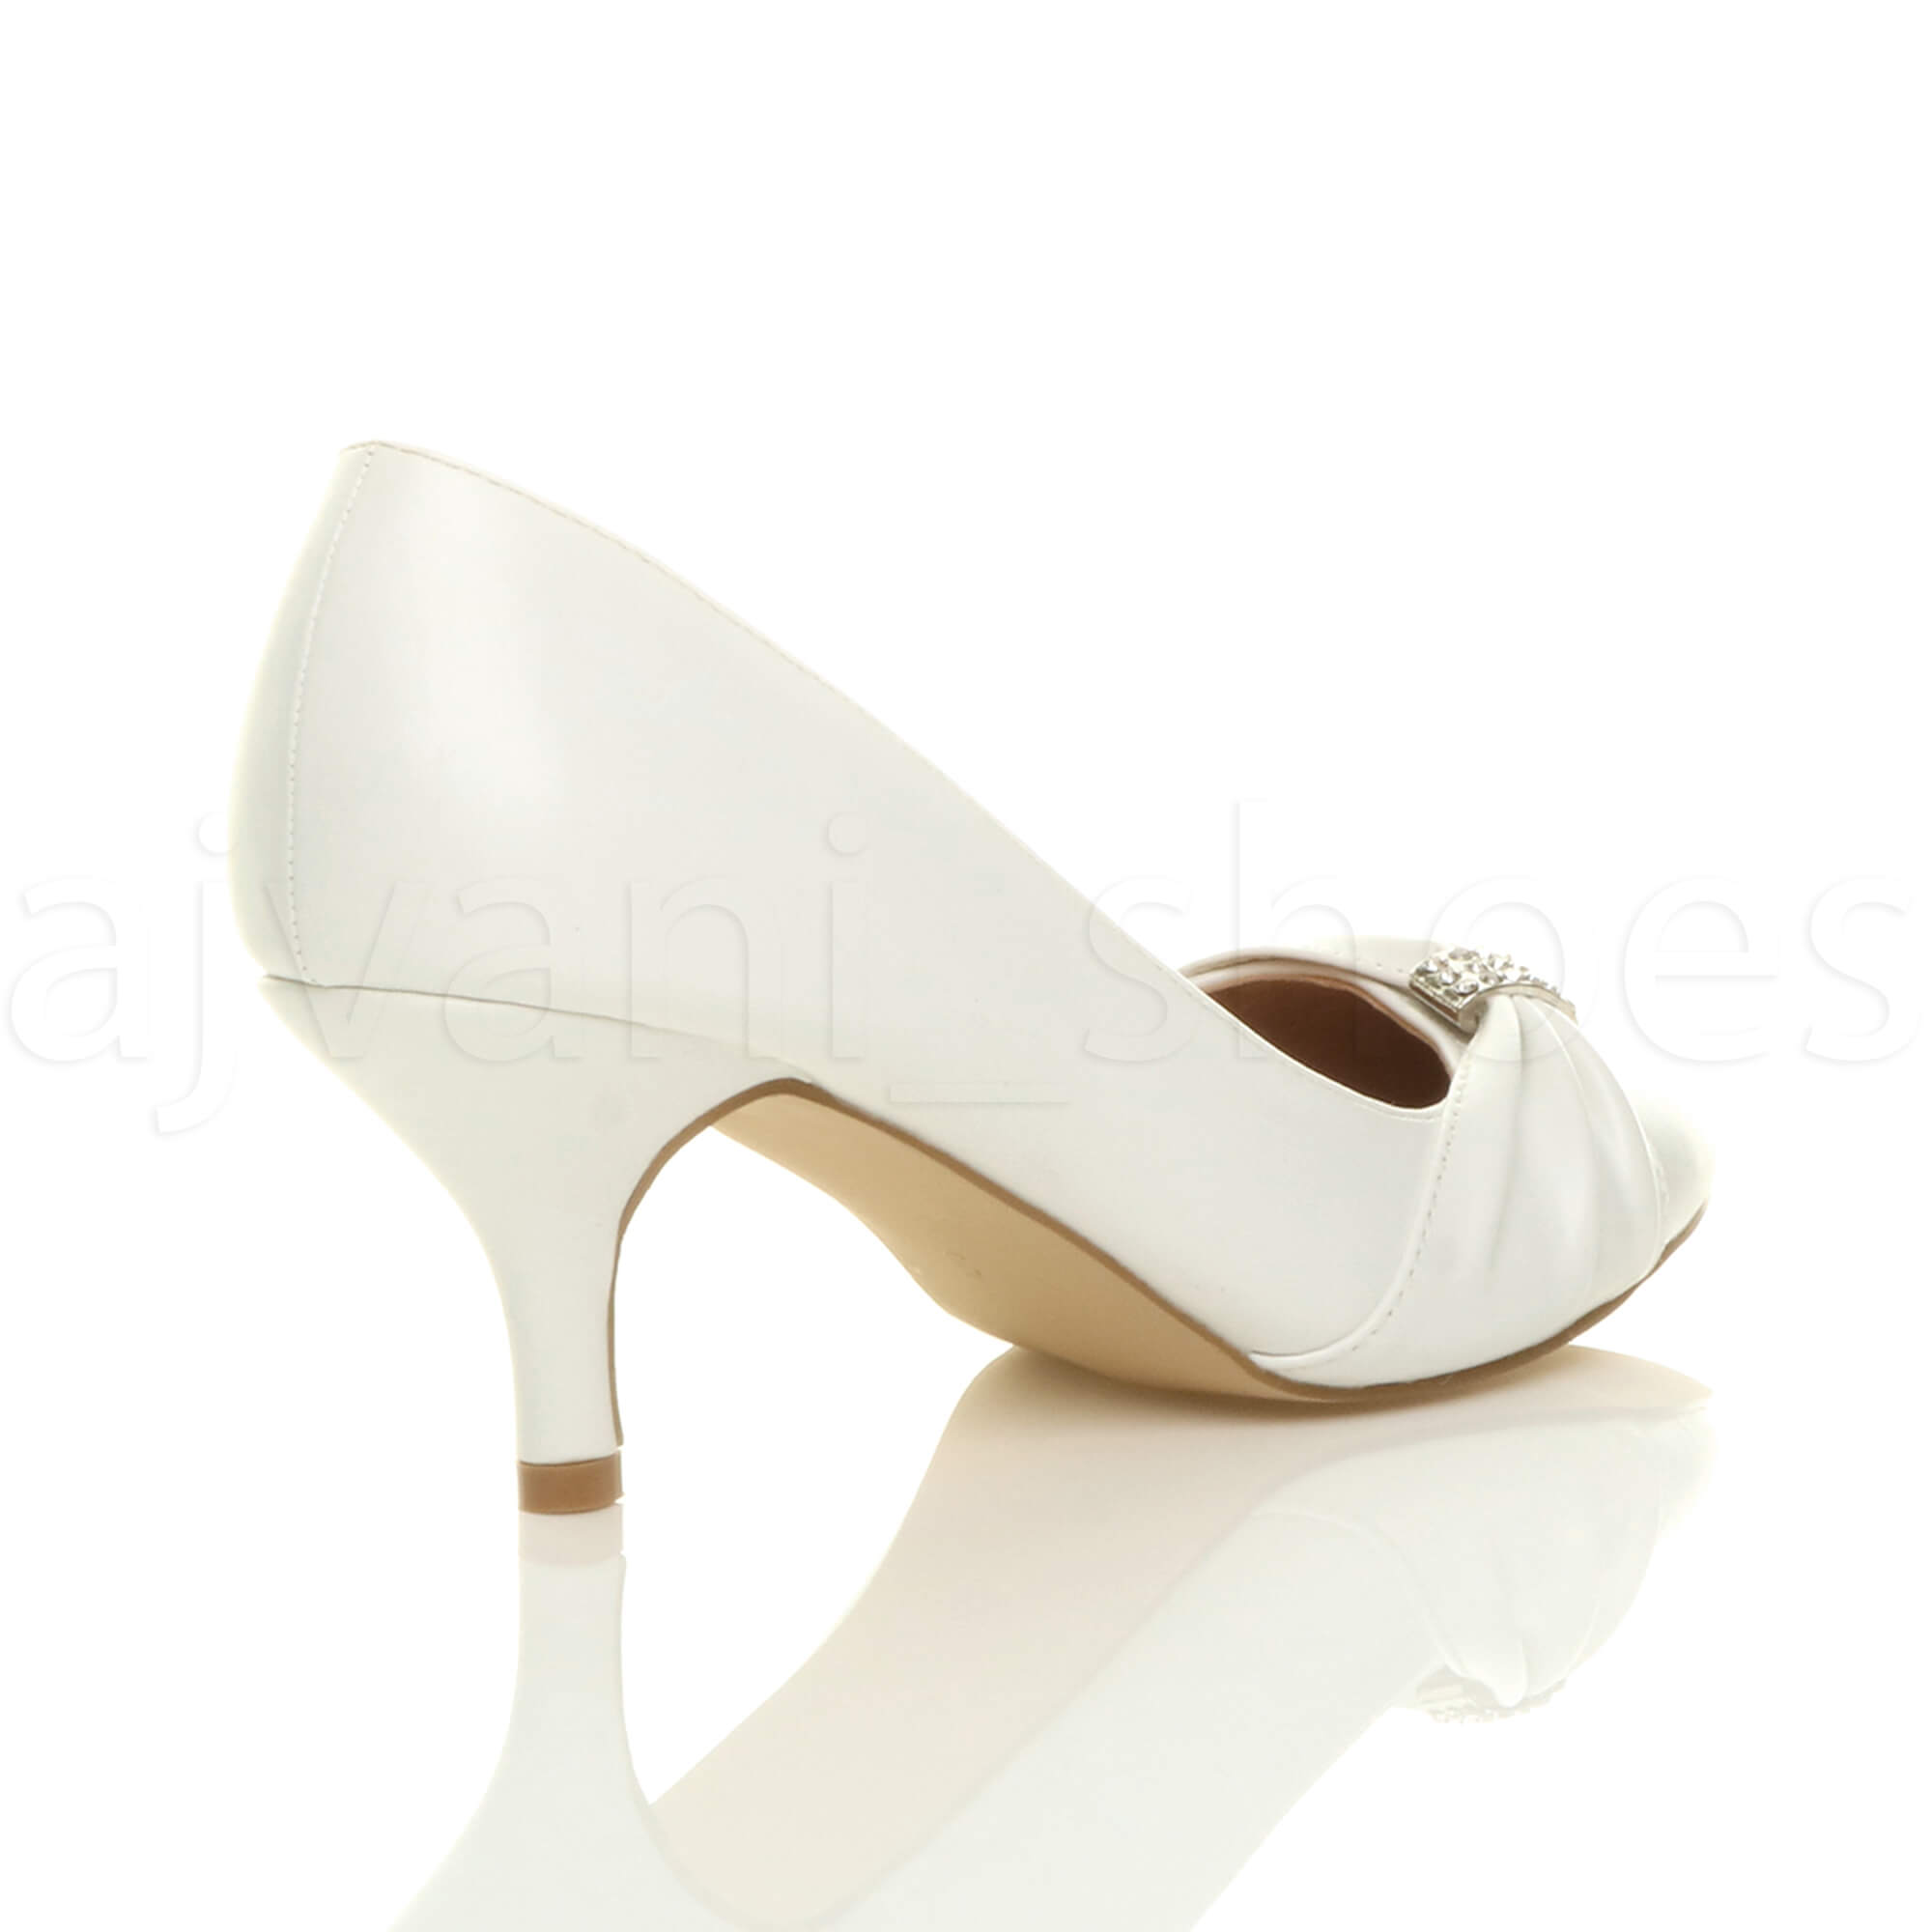 WOMENS-LADIES-MID-HEEL-RUCHED-DIAMANTE-WEDDING-PROM-EVENING-COURT-SHOES-SIZE thumbnail 101